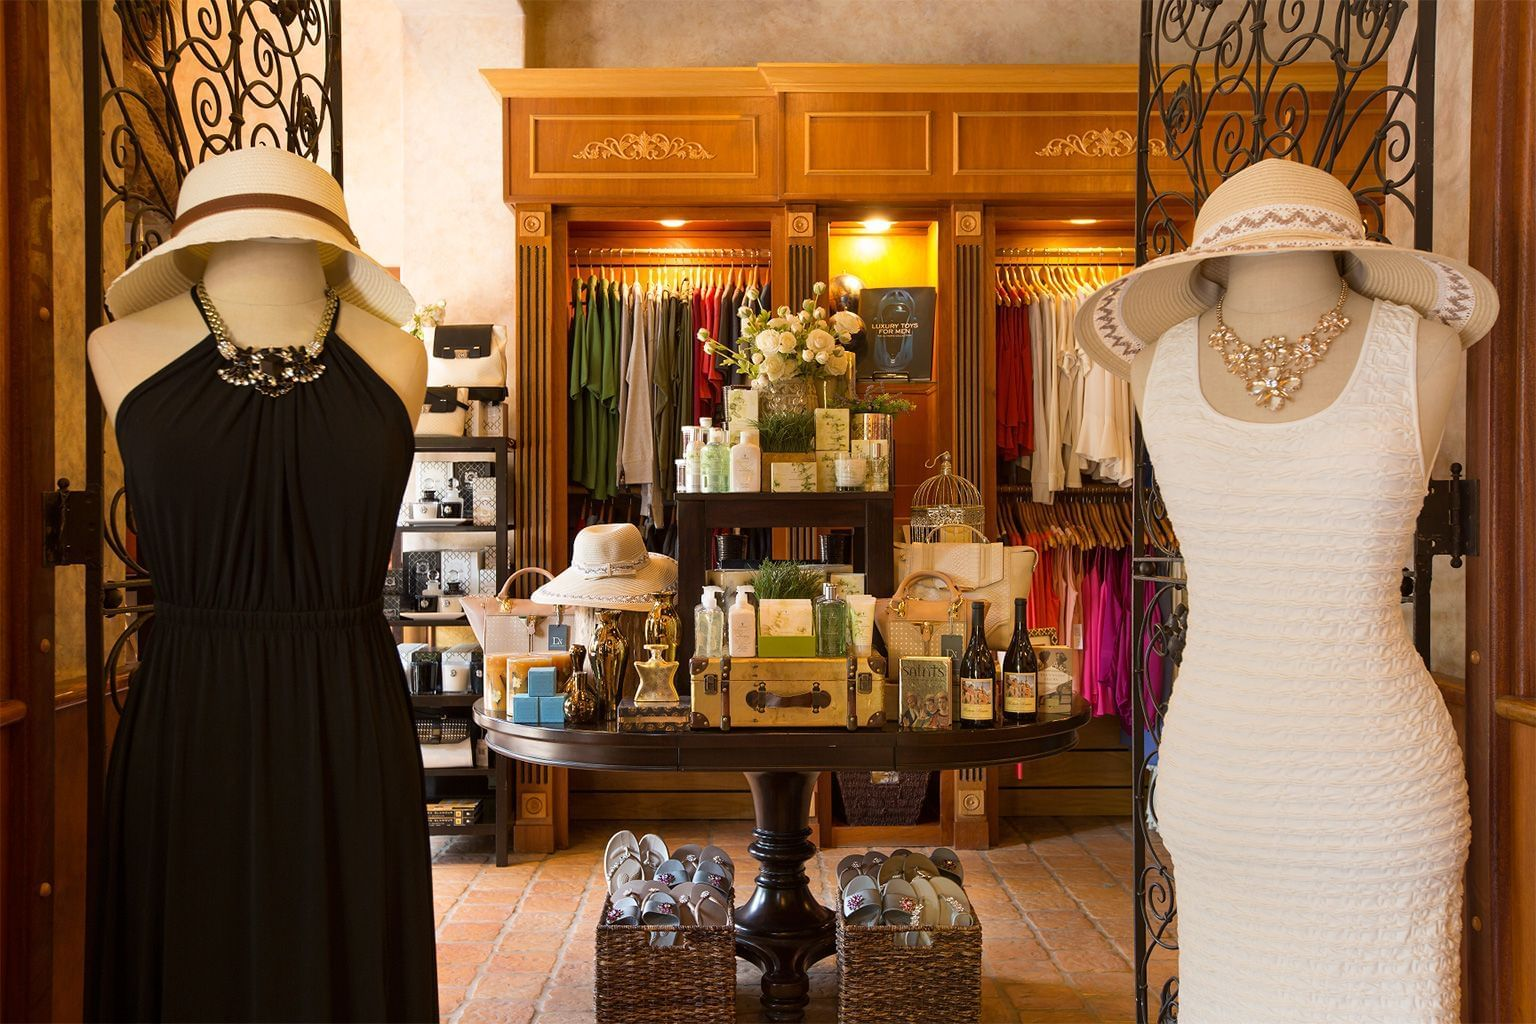 entrance to shop with dresses and accessories